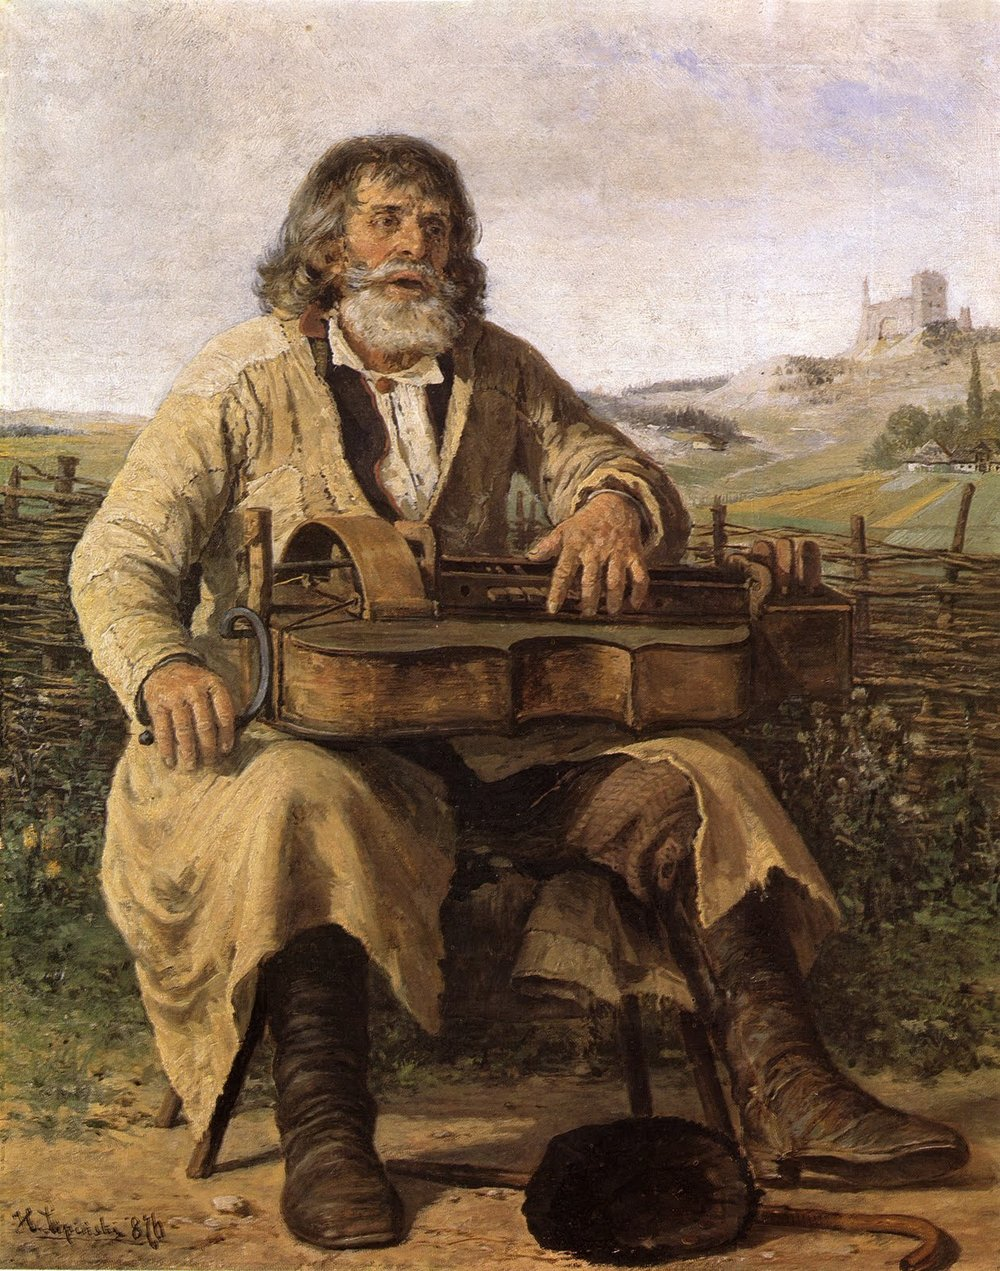 Minstrel  (1876) by Hippolytus Lipinski (d. 1884). I wonder if Müller's mention of growling dogs could possibly have to do with the hurdy-gurdy's buzzing bridge...